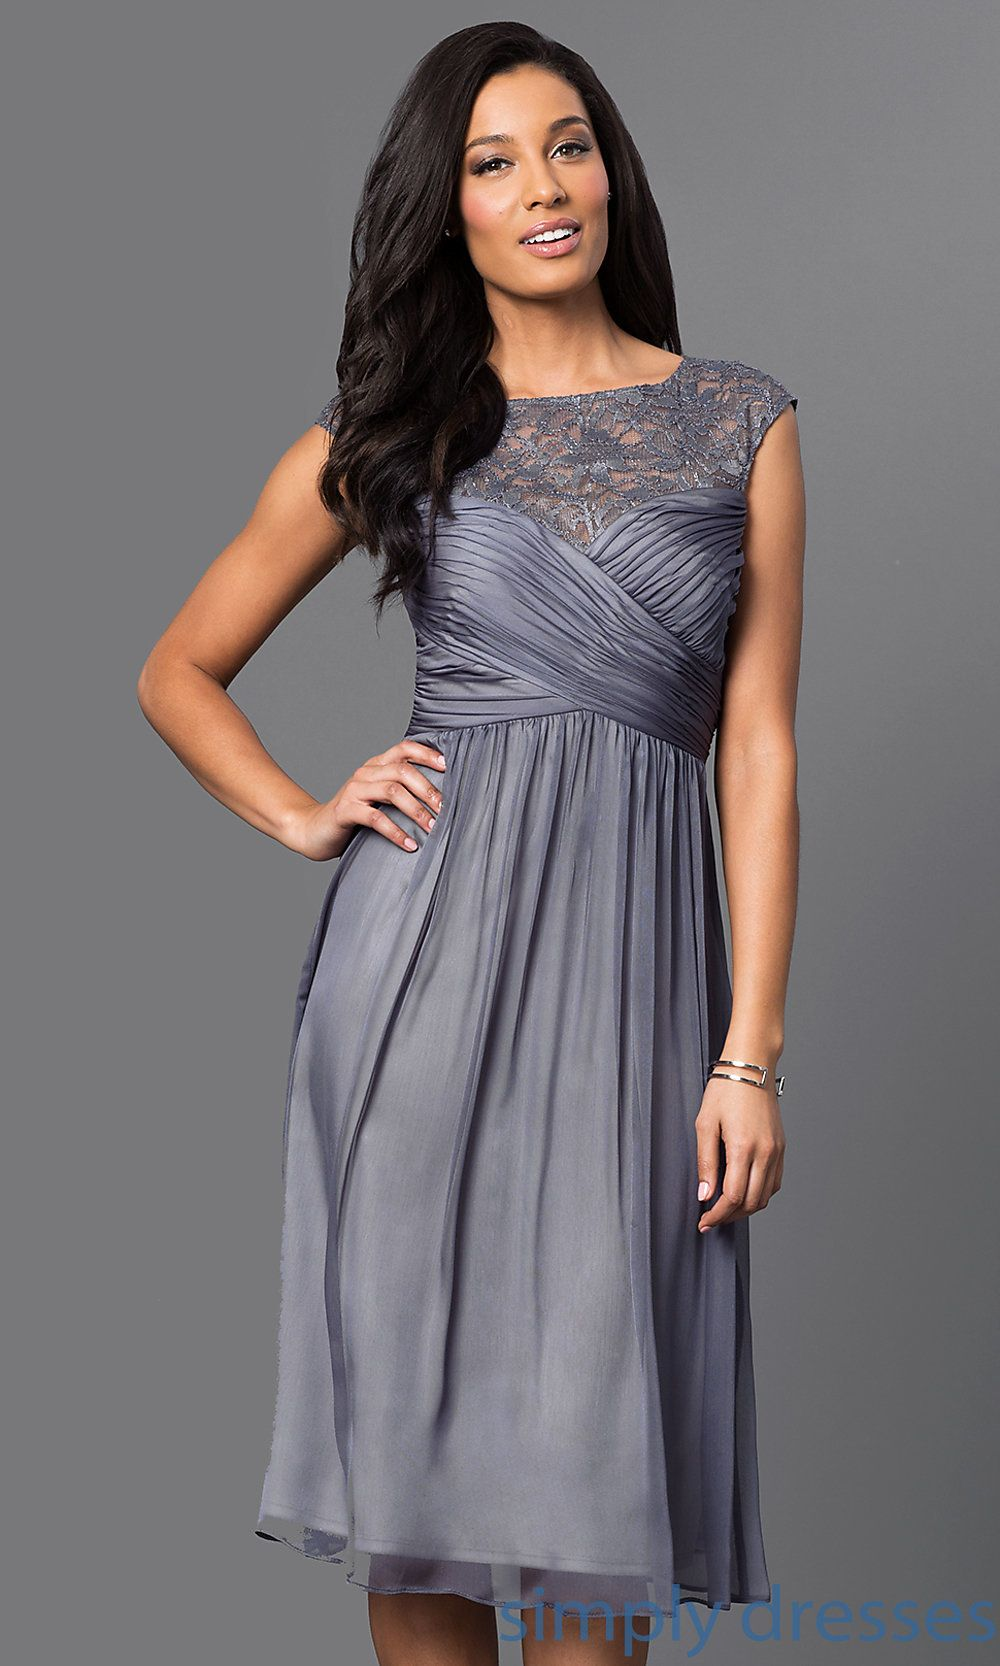 Semiformal Dresses 2015